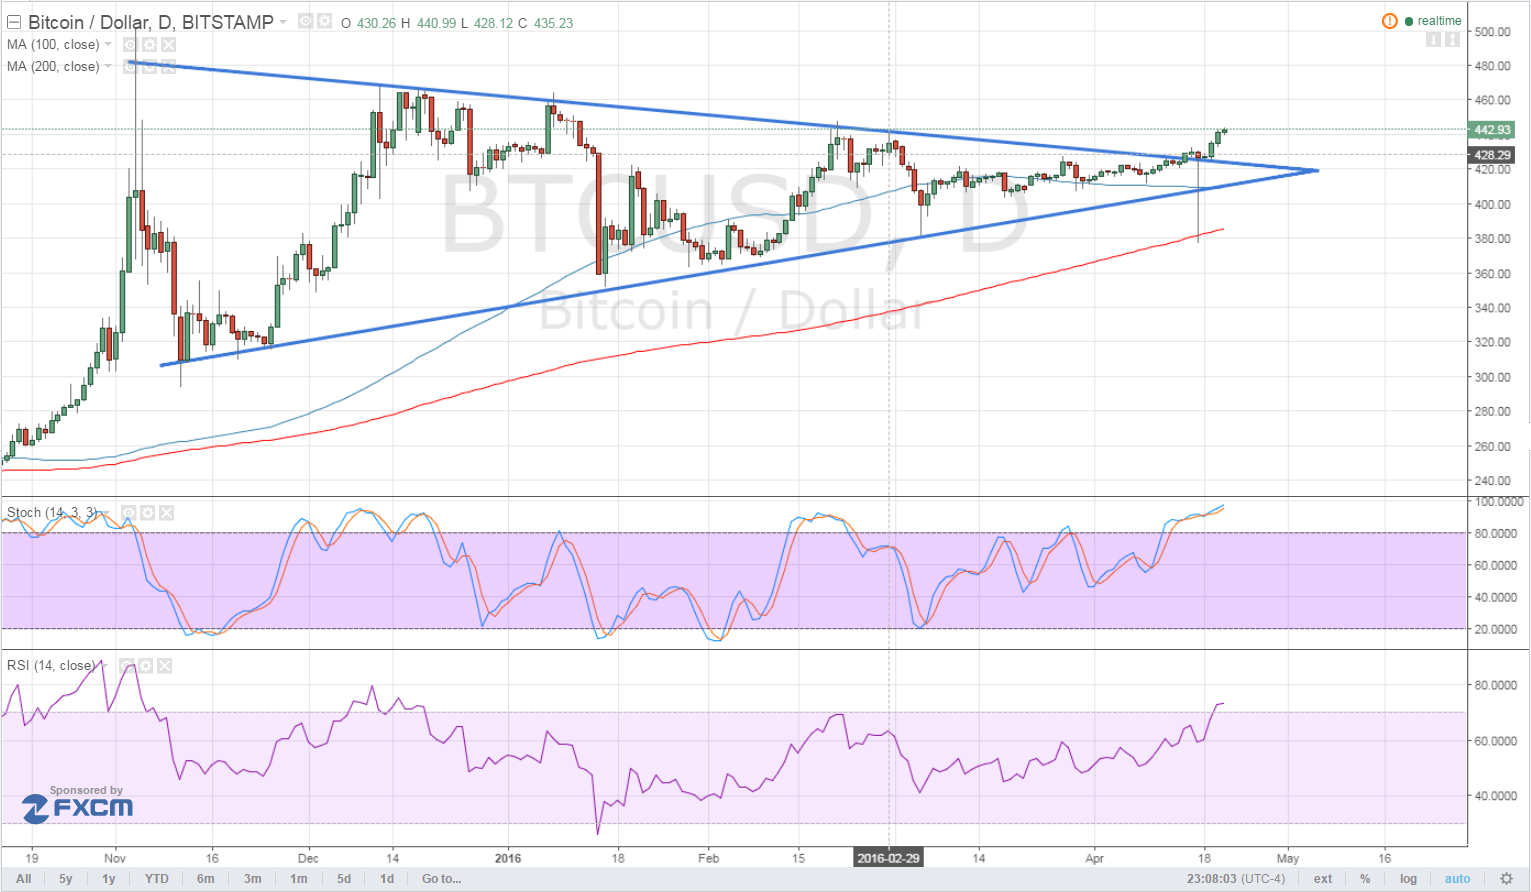 Bitcoin Price Technical Analysis for 04/21/2016 - Long-Term Triangle Breakout?